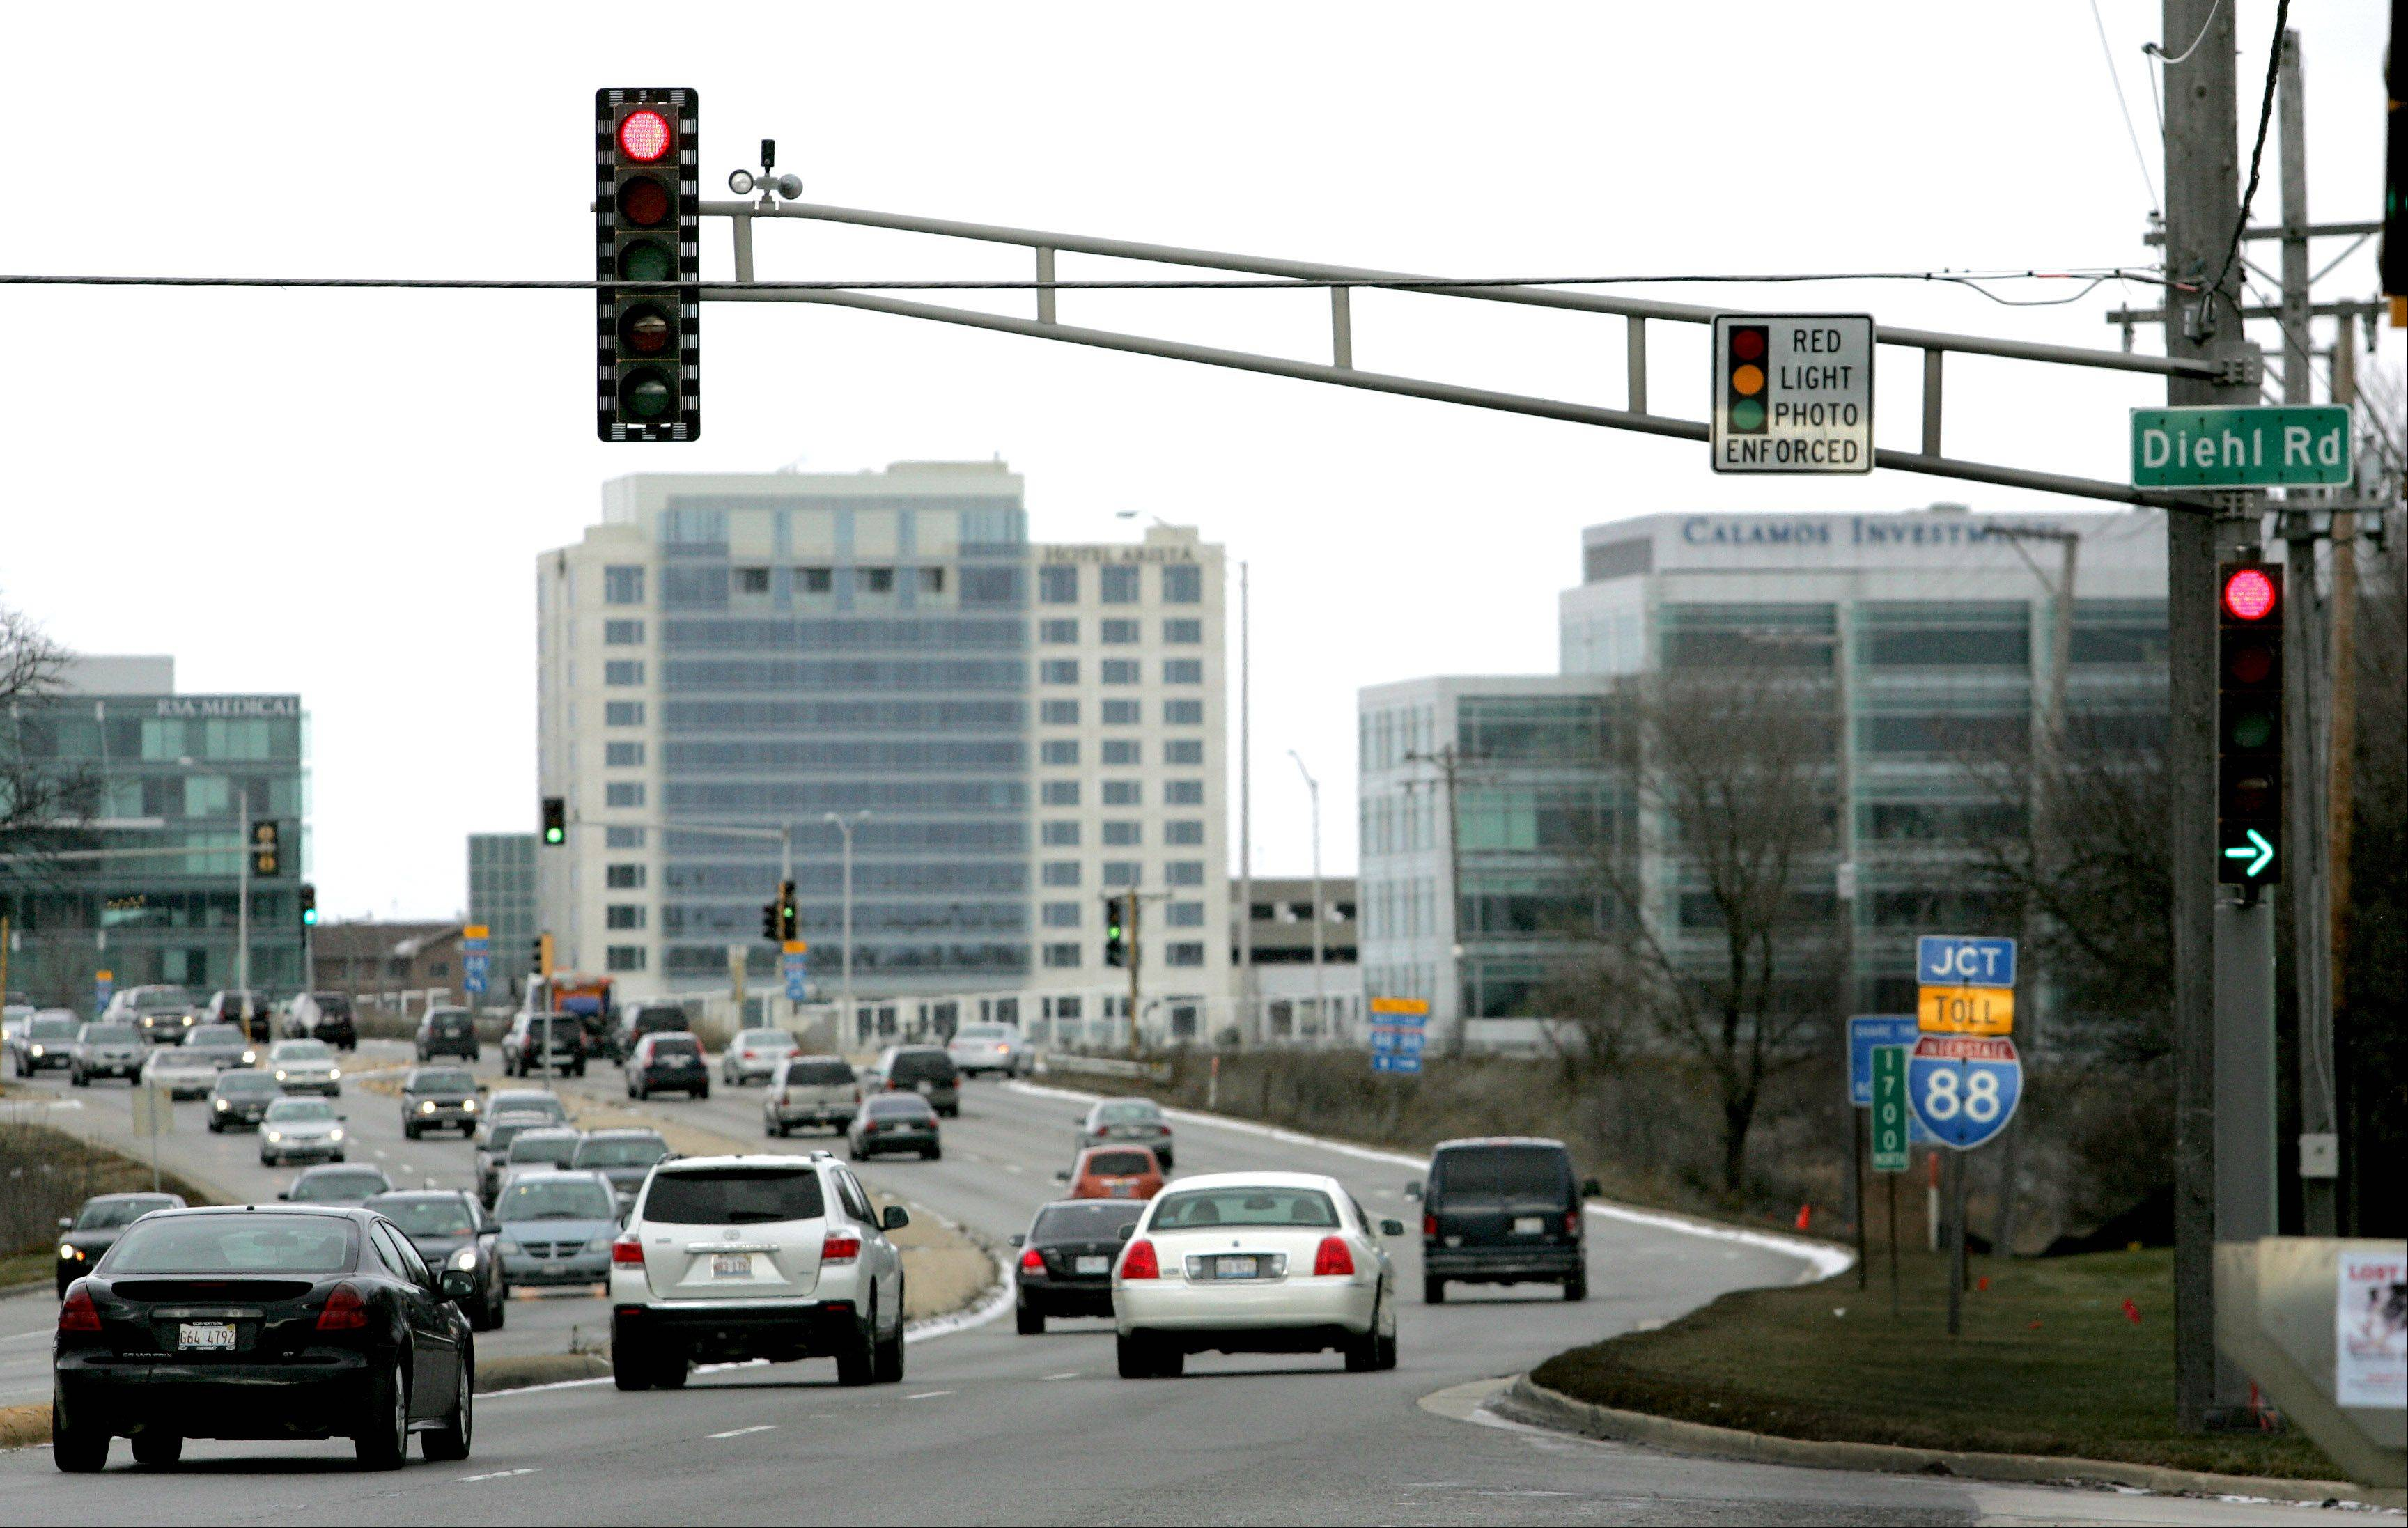 Naperville will be turning off its red-light cameras on Tuesday, including this one at Route 59 and Diehl Road.